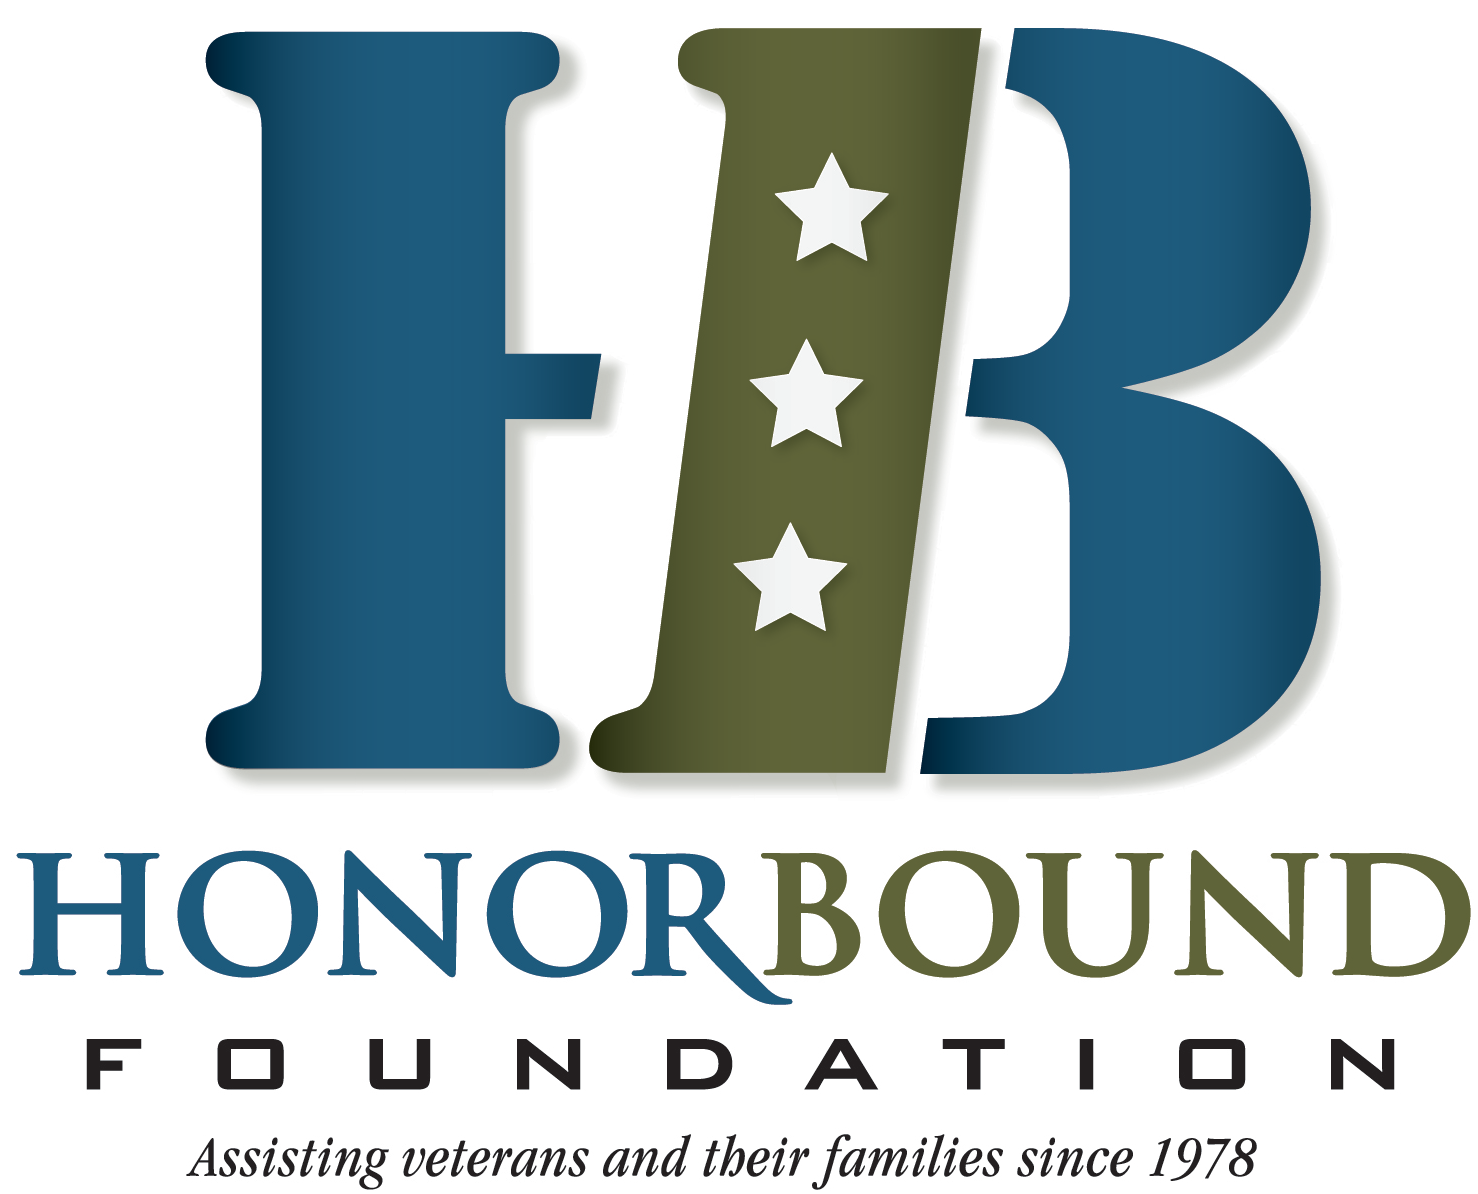 Rhode Island Car Donations - HonorBound Foundation - DonatecarUSA.com